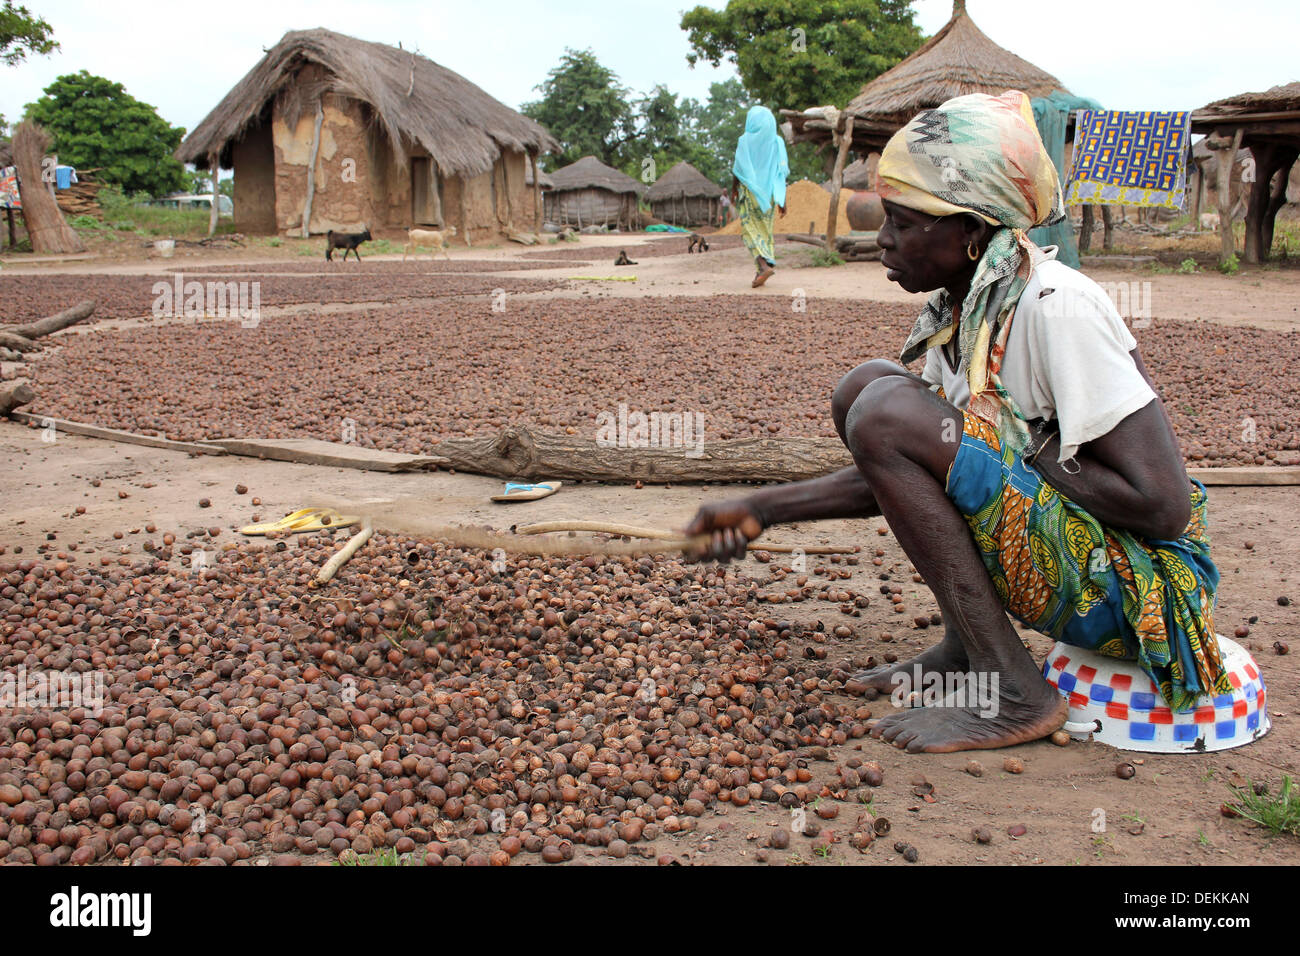 Gonja Ethnic Woman In Ghanaian Village Beating Shea Nuts To Crack The Outer Shell - Stock Image